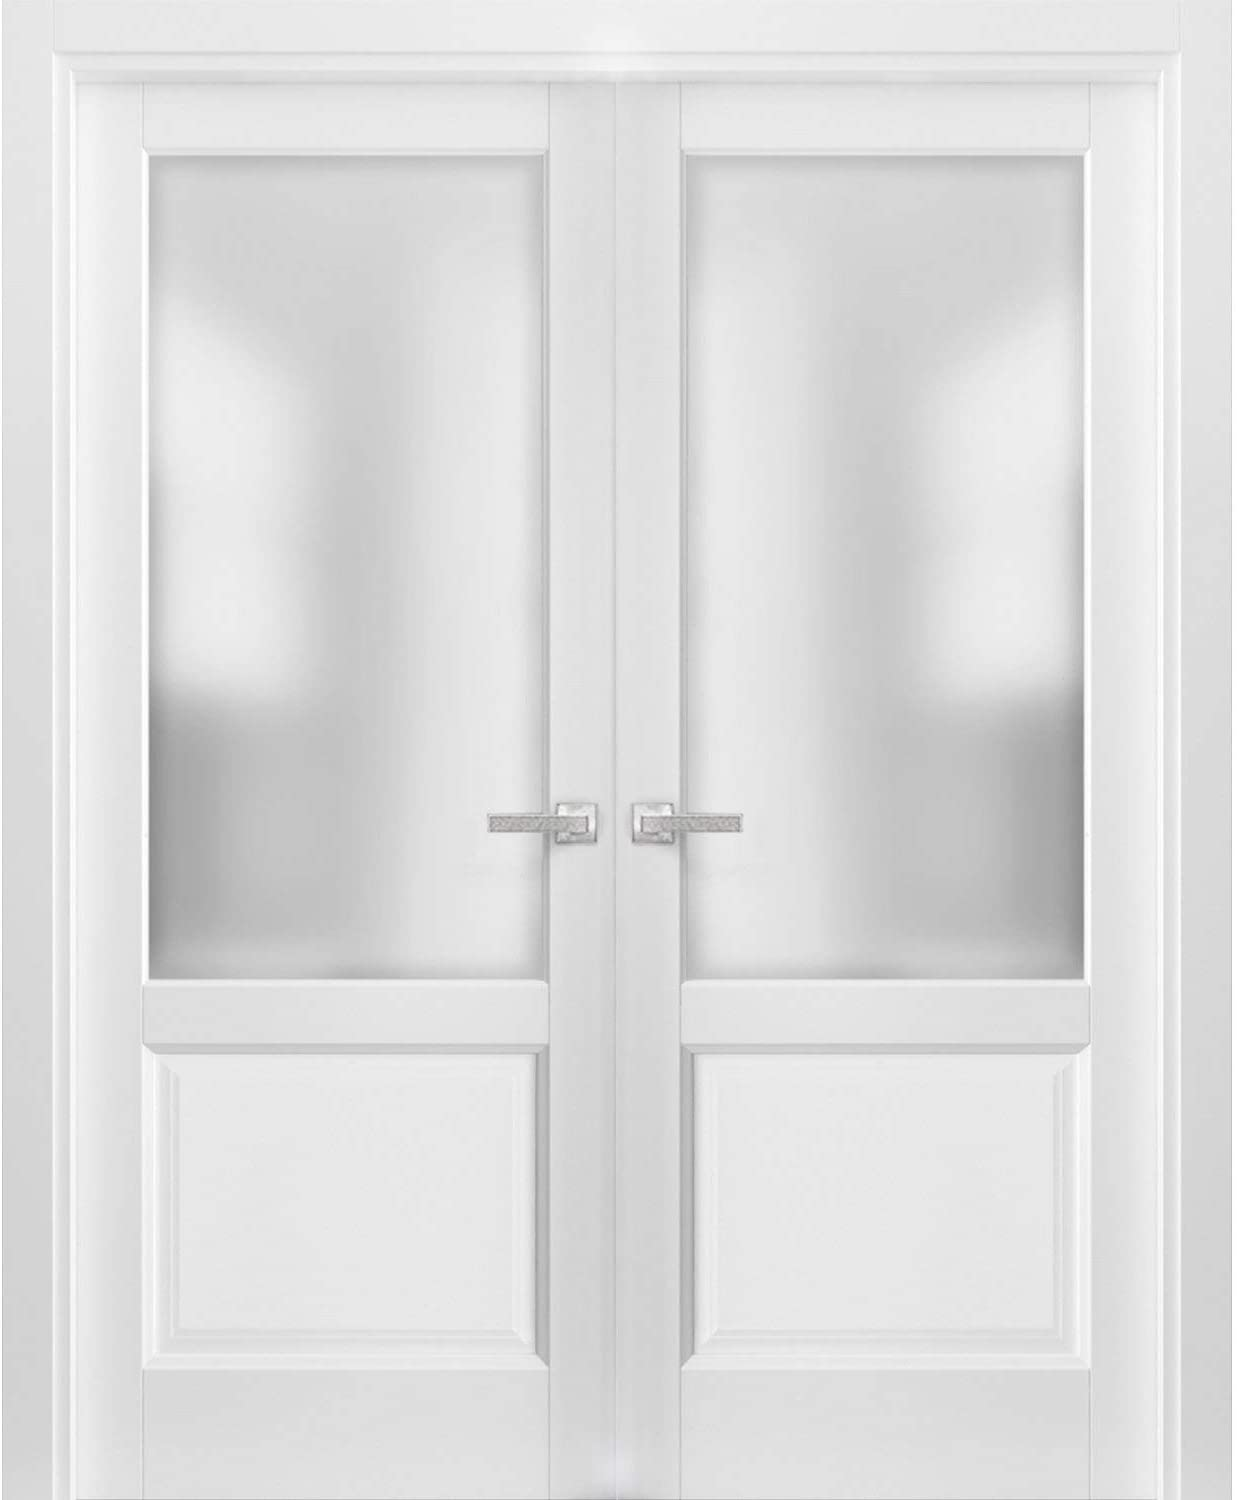 French Double Panel Max Max 42% OFF 68% OFF Lite Doors 60 22 96 Lucia with Hardware x